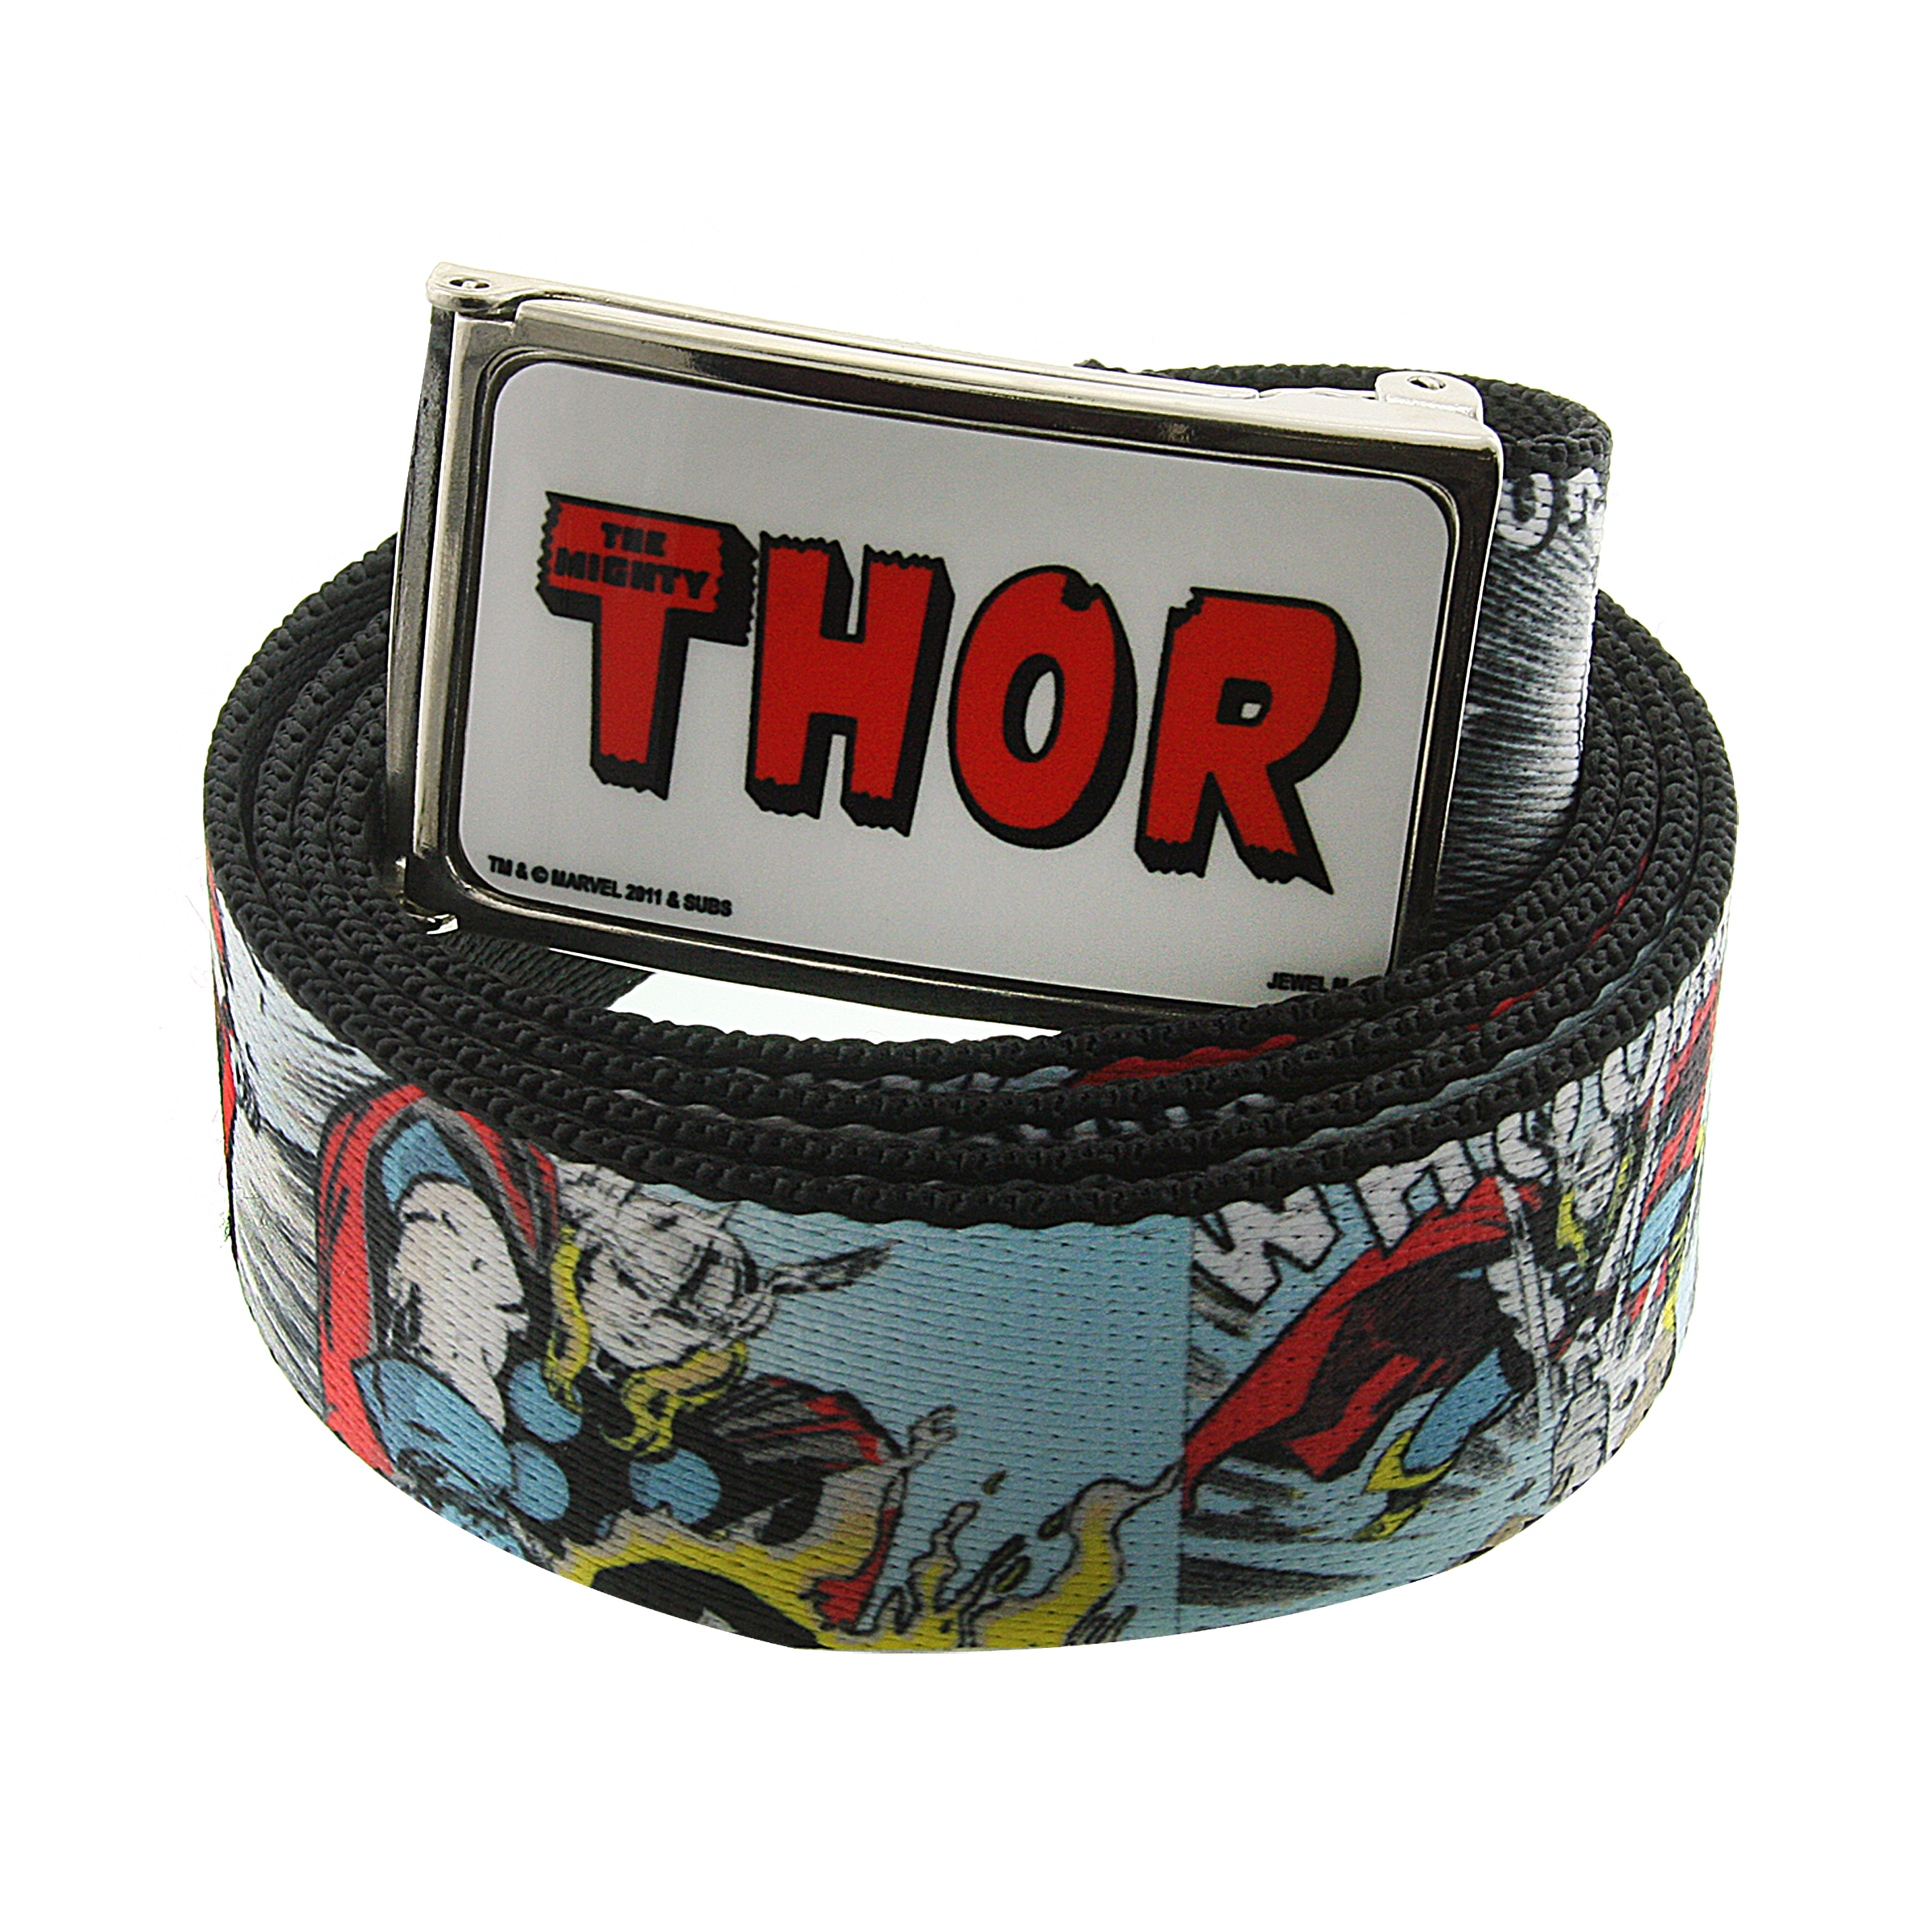 Marvel 1928 Marvel Men's Thor Comic Strip Web Belt (Multicolored) at Sears.com